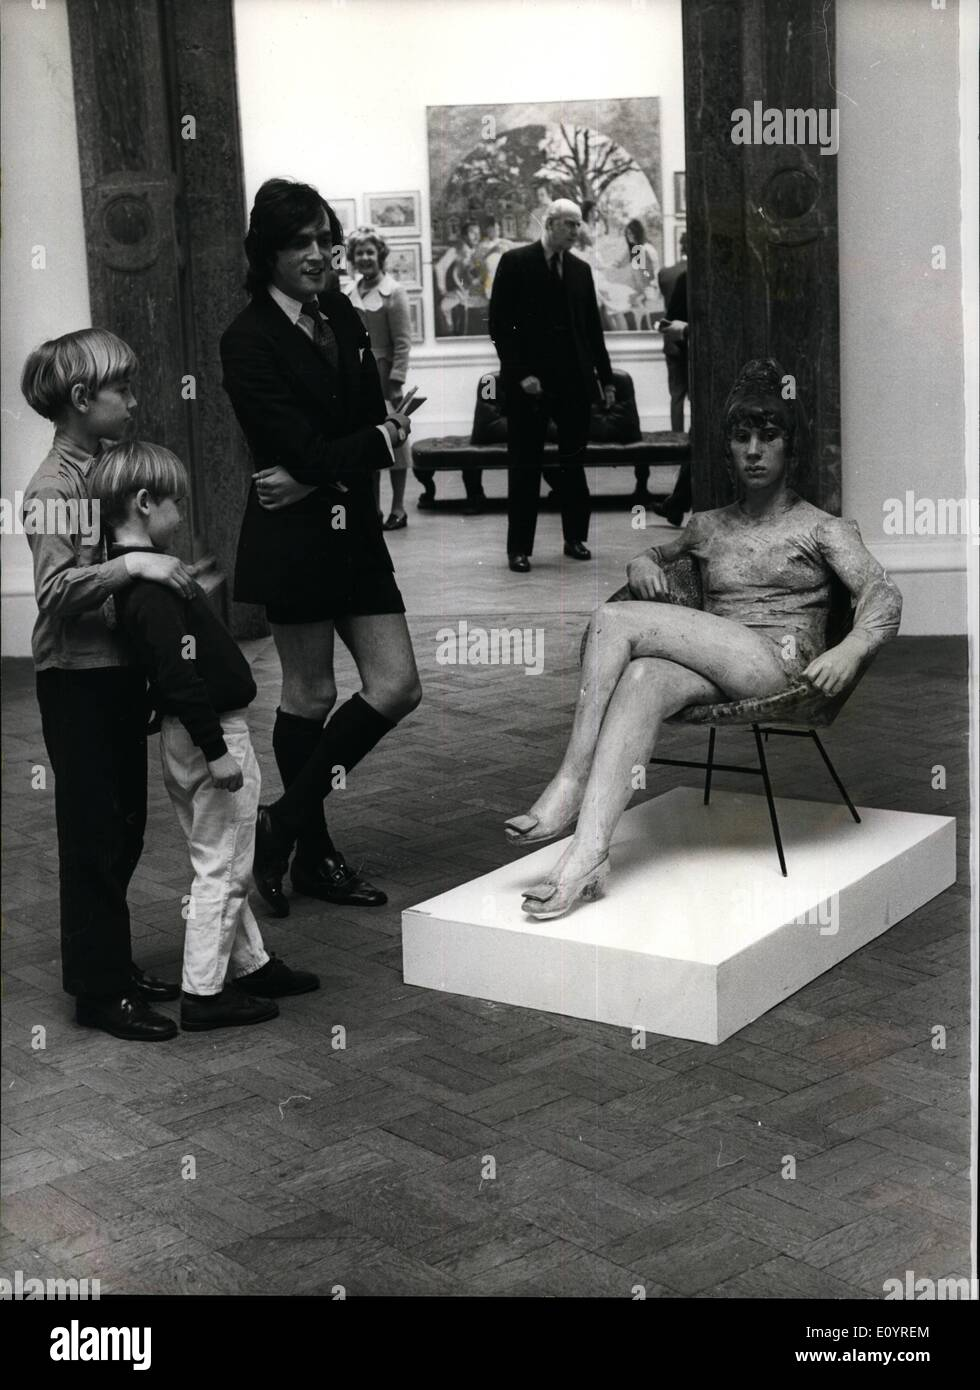 Apr. 04, 1971 - Almost Lifelike: James Butler's exhibit at the Royal Academy Summer Exhibition ''Sketch for a Portrait'', was greatly admired by visitors for its remarkable resemblance to the real thing. - Stock Image